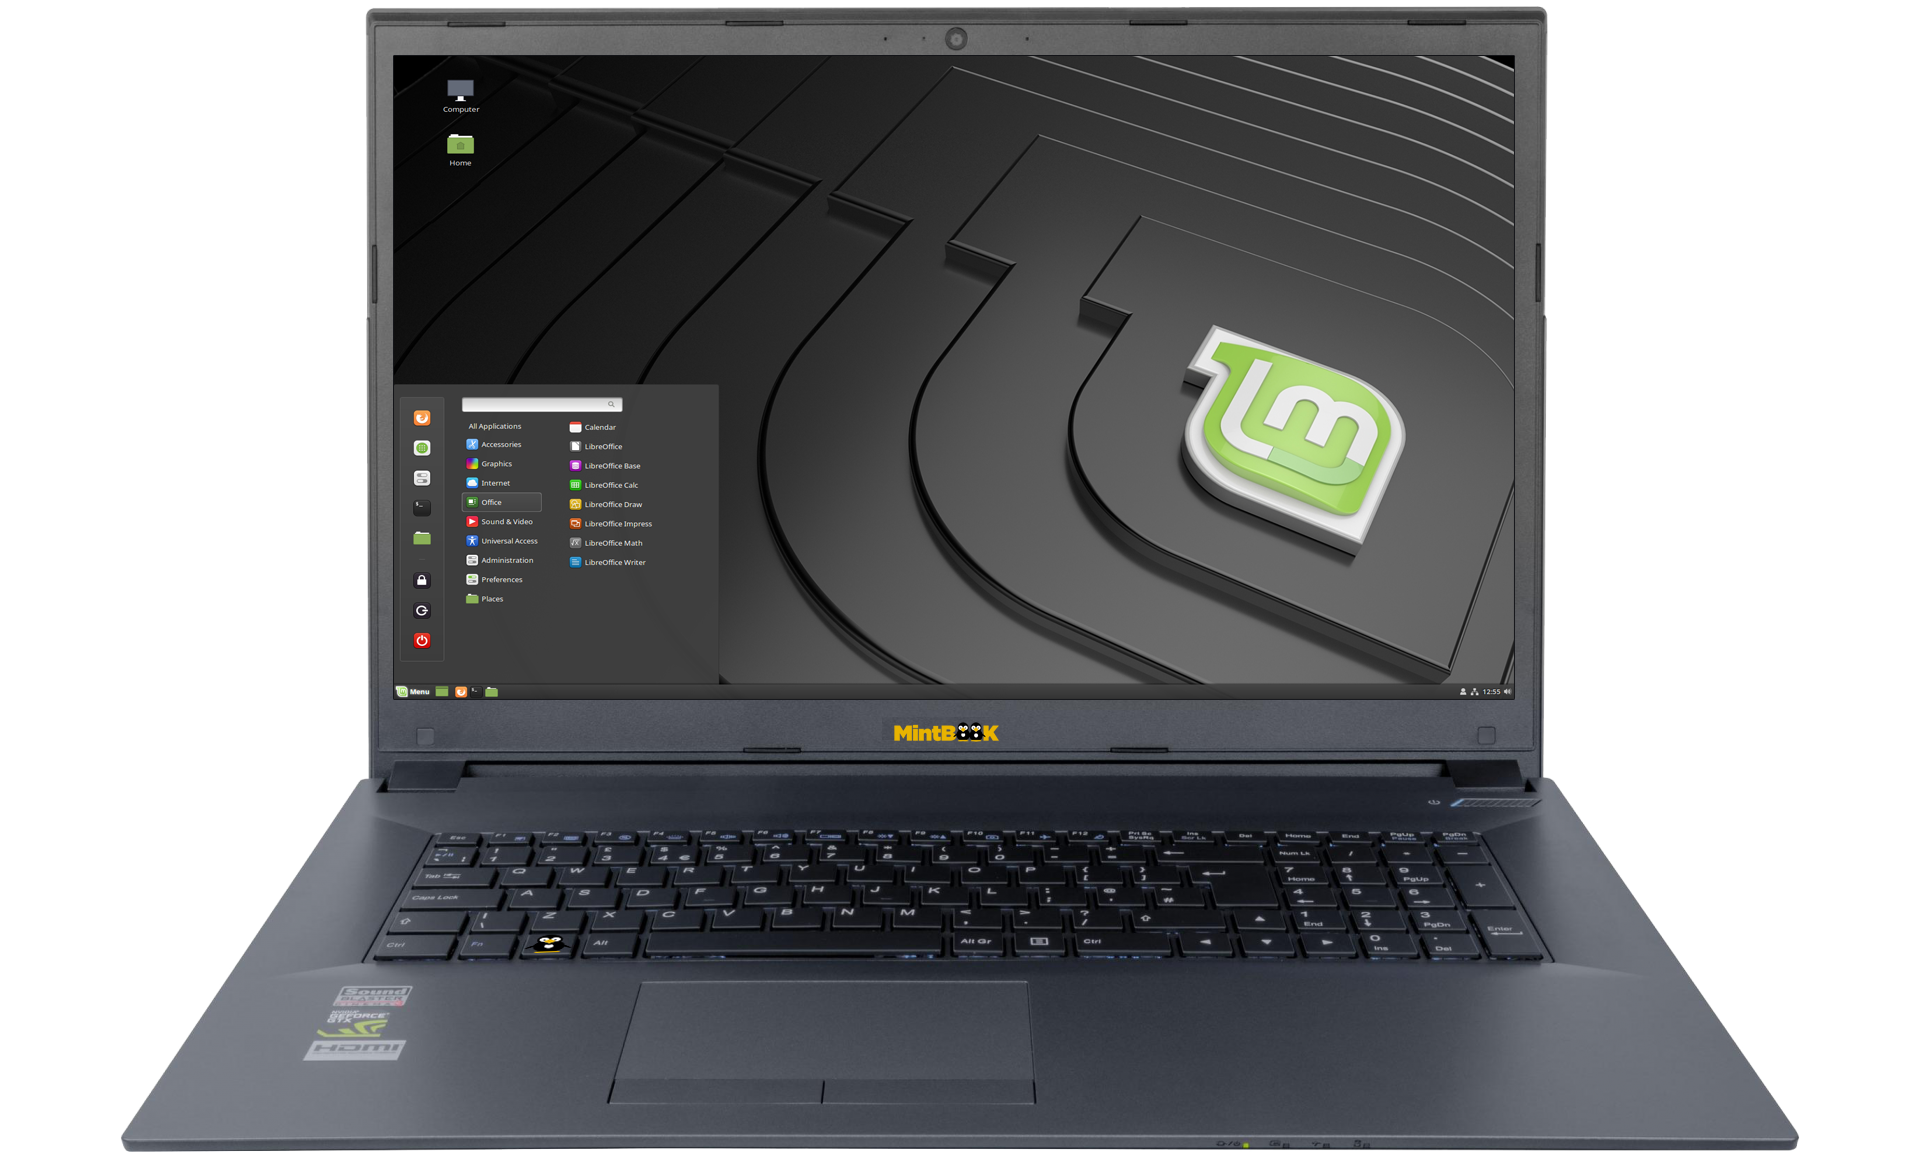 Linux-mint Clevo 14 inch